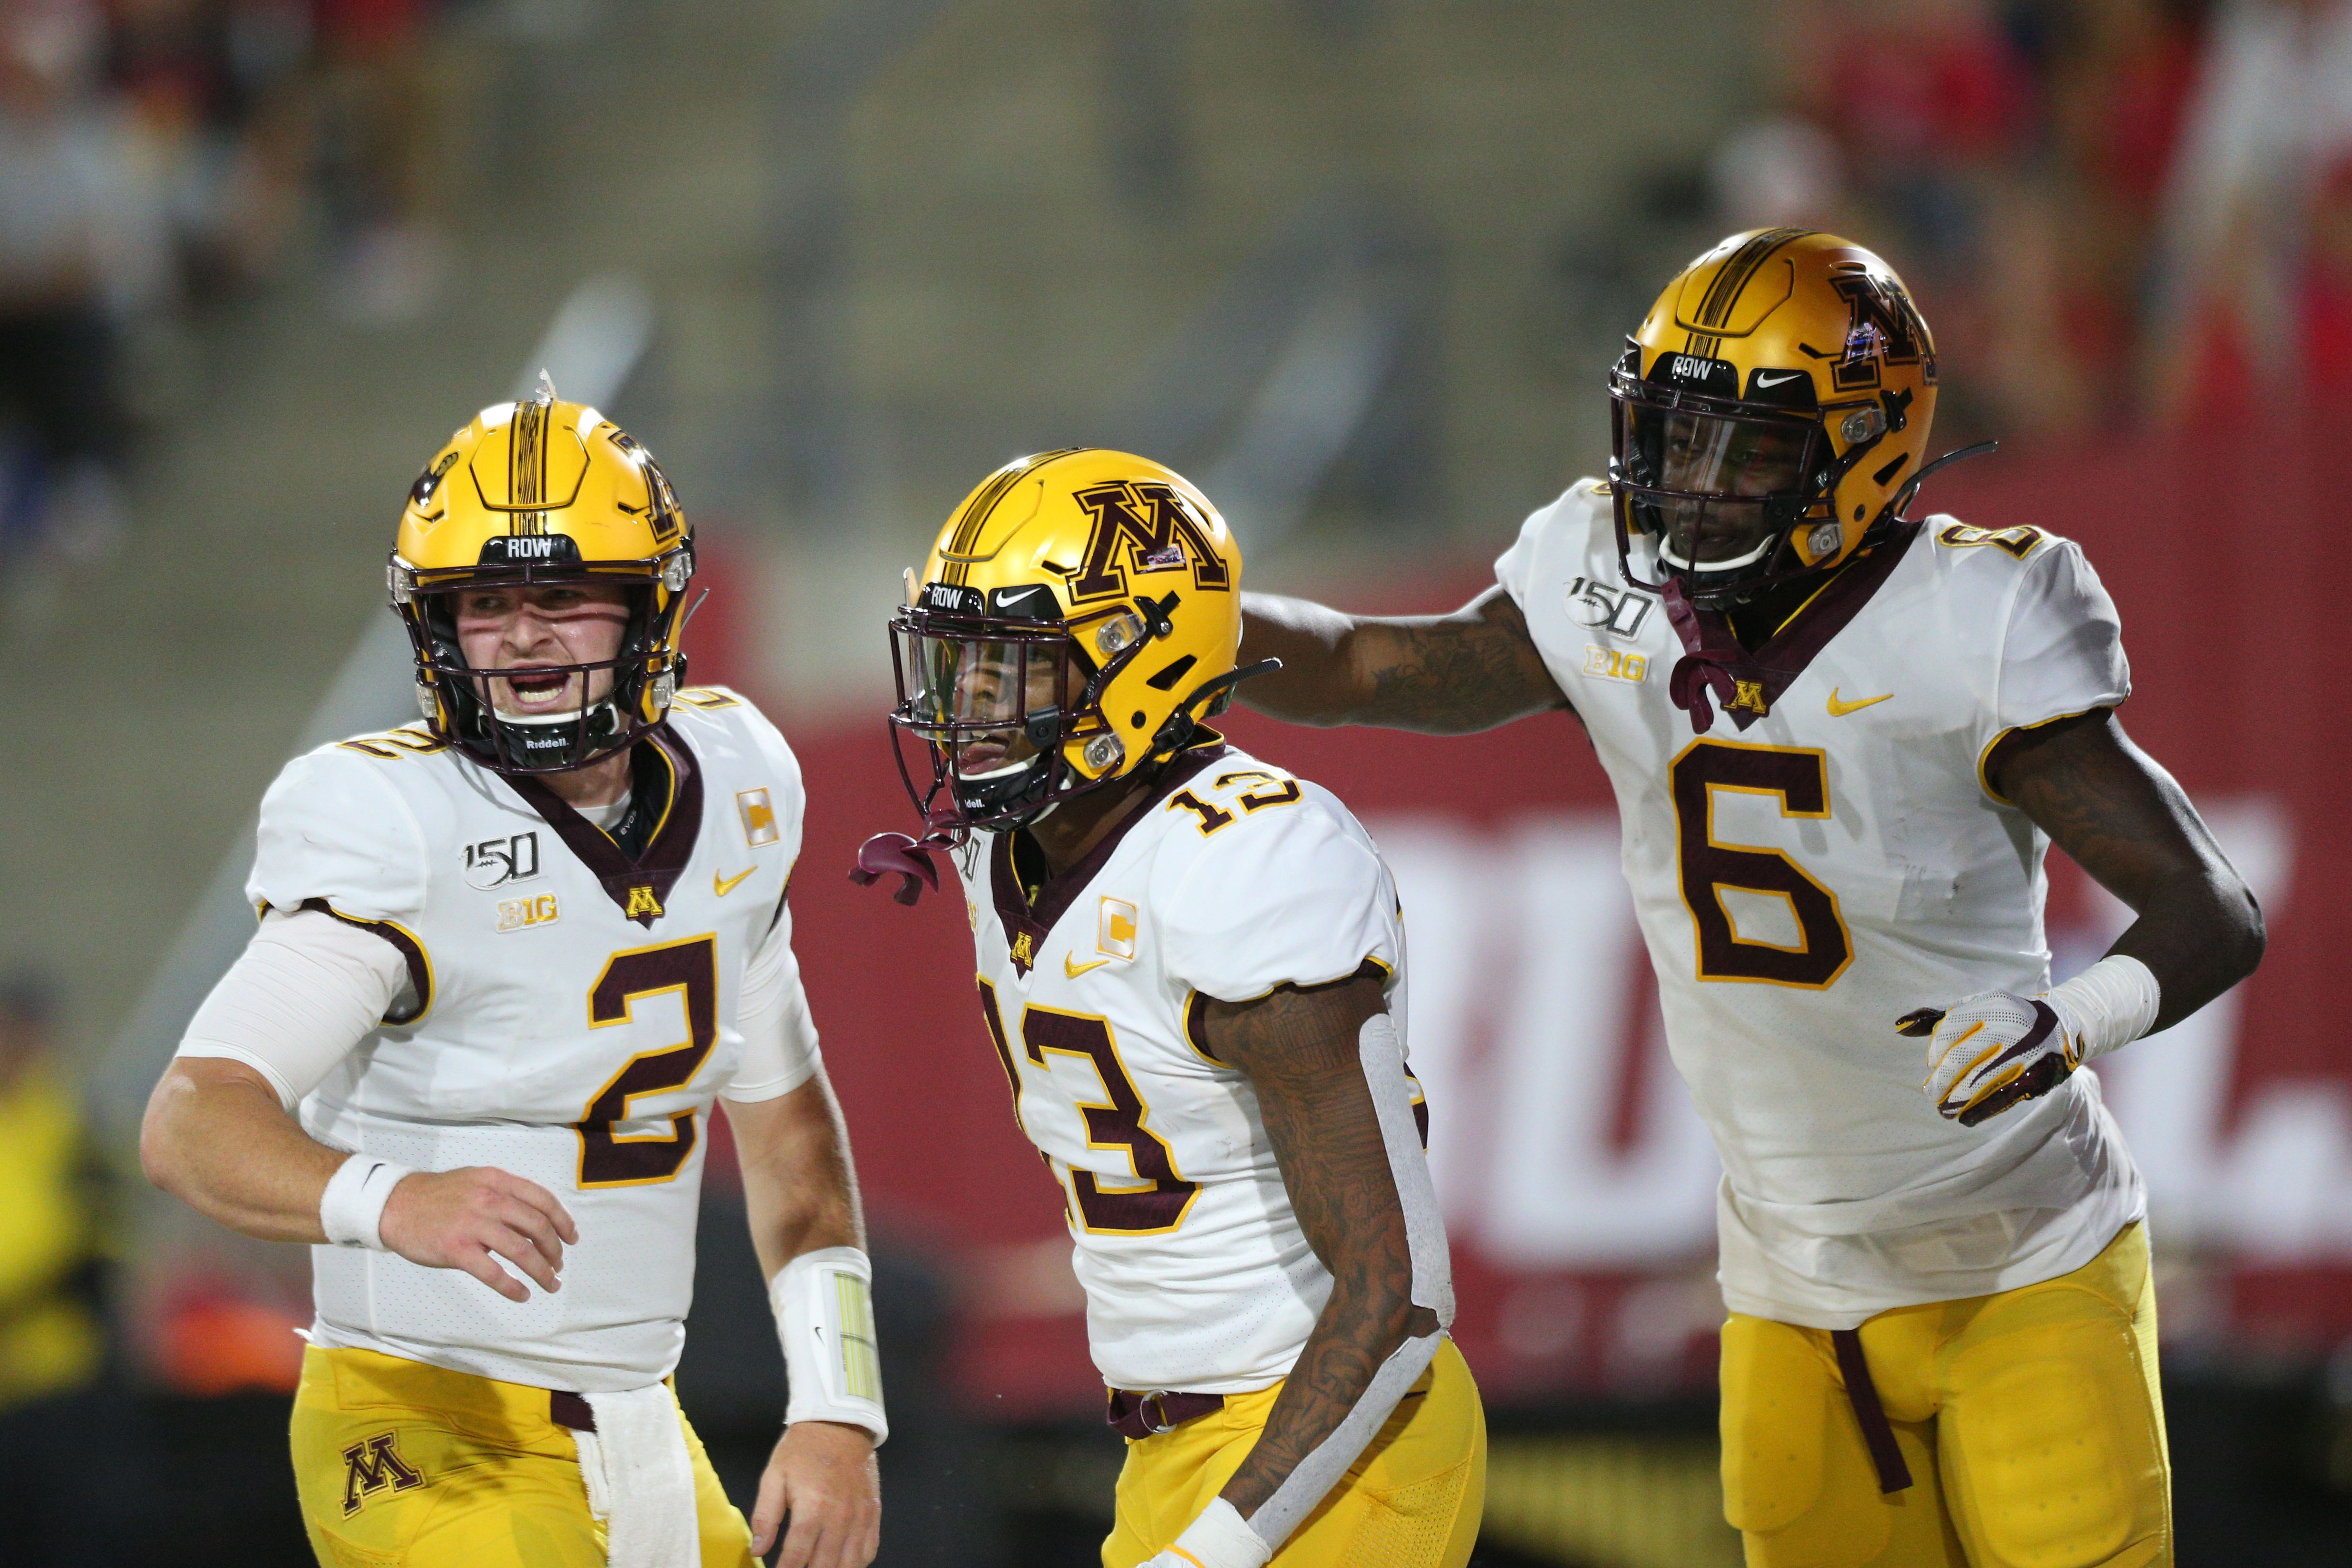 Sep 7, 2019; Fresno, CA, USA; Minnesota Golden Gophers wide receiver Rashod Bateman (13) is congratulated by wide receiver Tyler Johnson (6) and quarterback Tanner Morgan (2) after catching a touchdown against the Fresno State Bulldogs in the first quarter at Bulldog Stadium. Mandatory Credit: Cary Edmondson-USA TODAY Sports